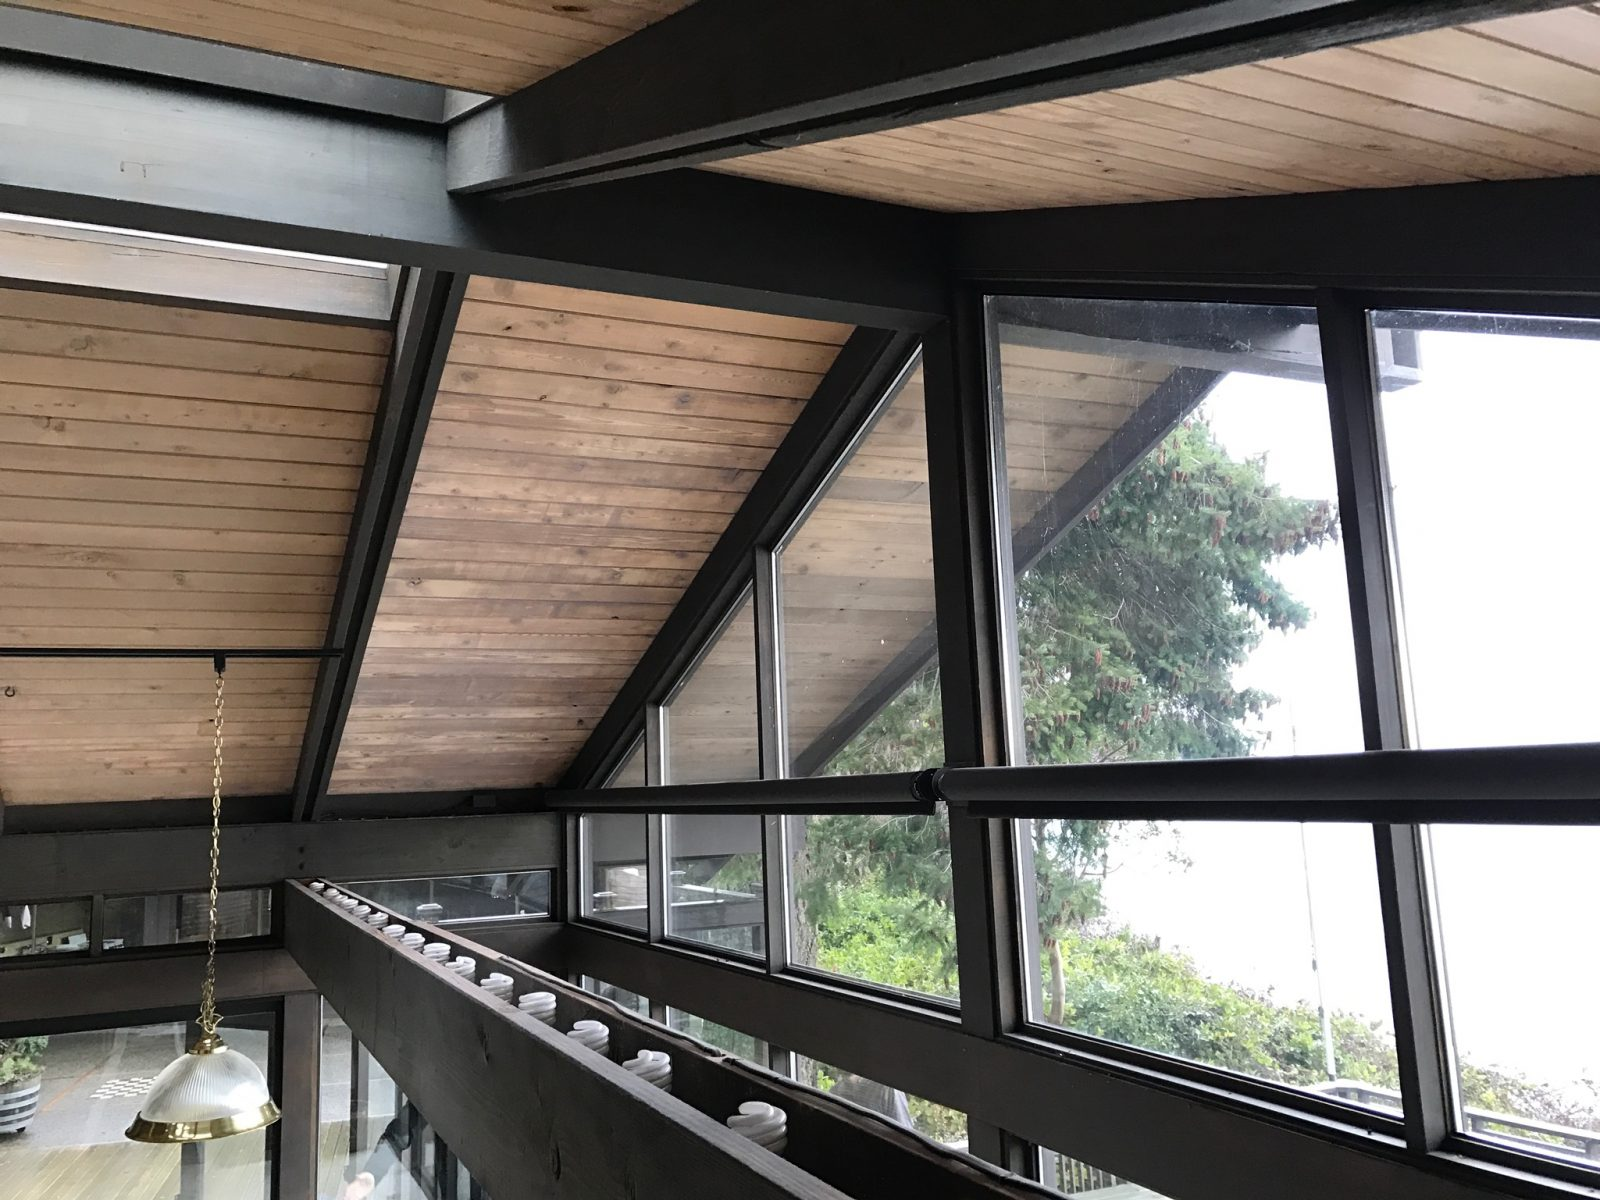 PHOTO OF SOUTH HOUSE CEILING. TONGUE AND GROOVE WOOD IS CONTINUOUS FROM INTERIOR TO EXTERIOR.